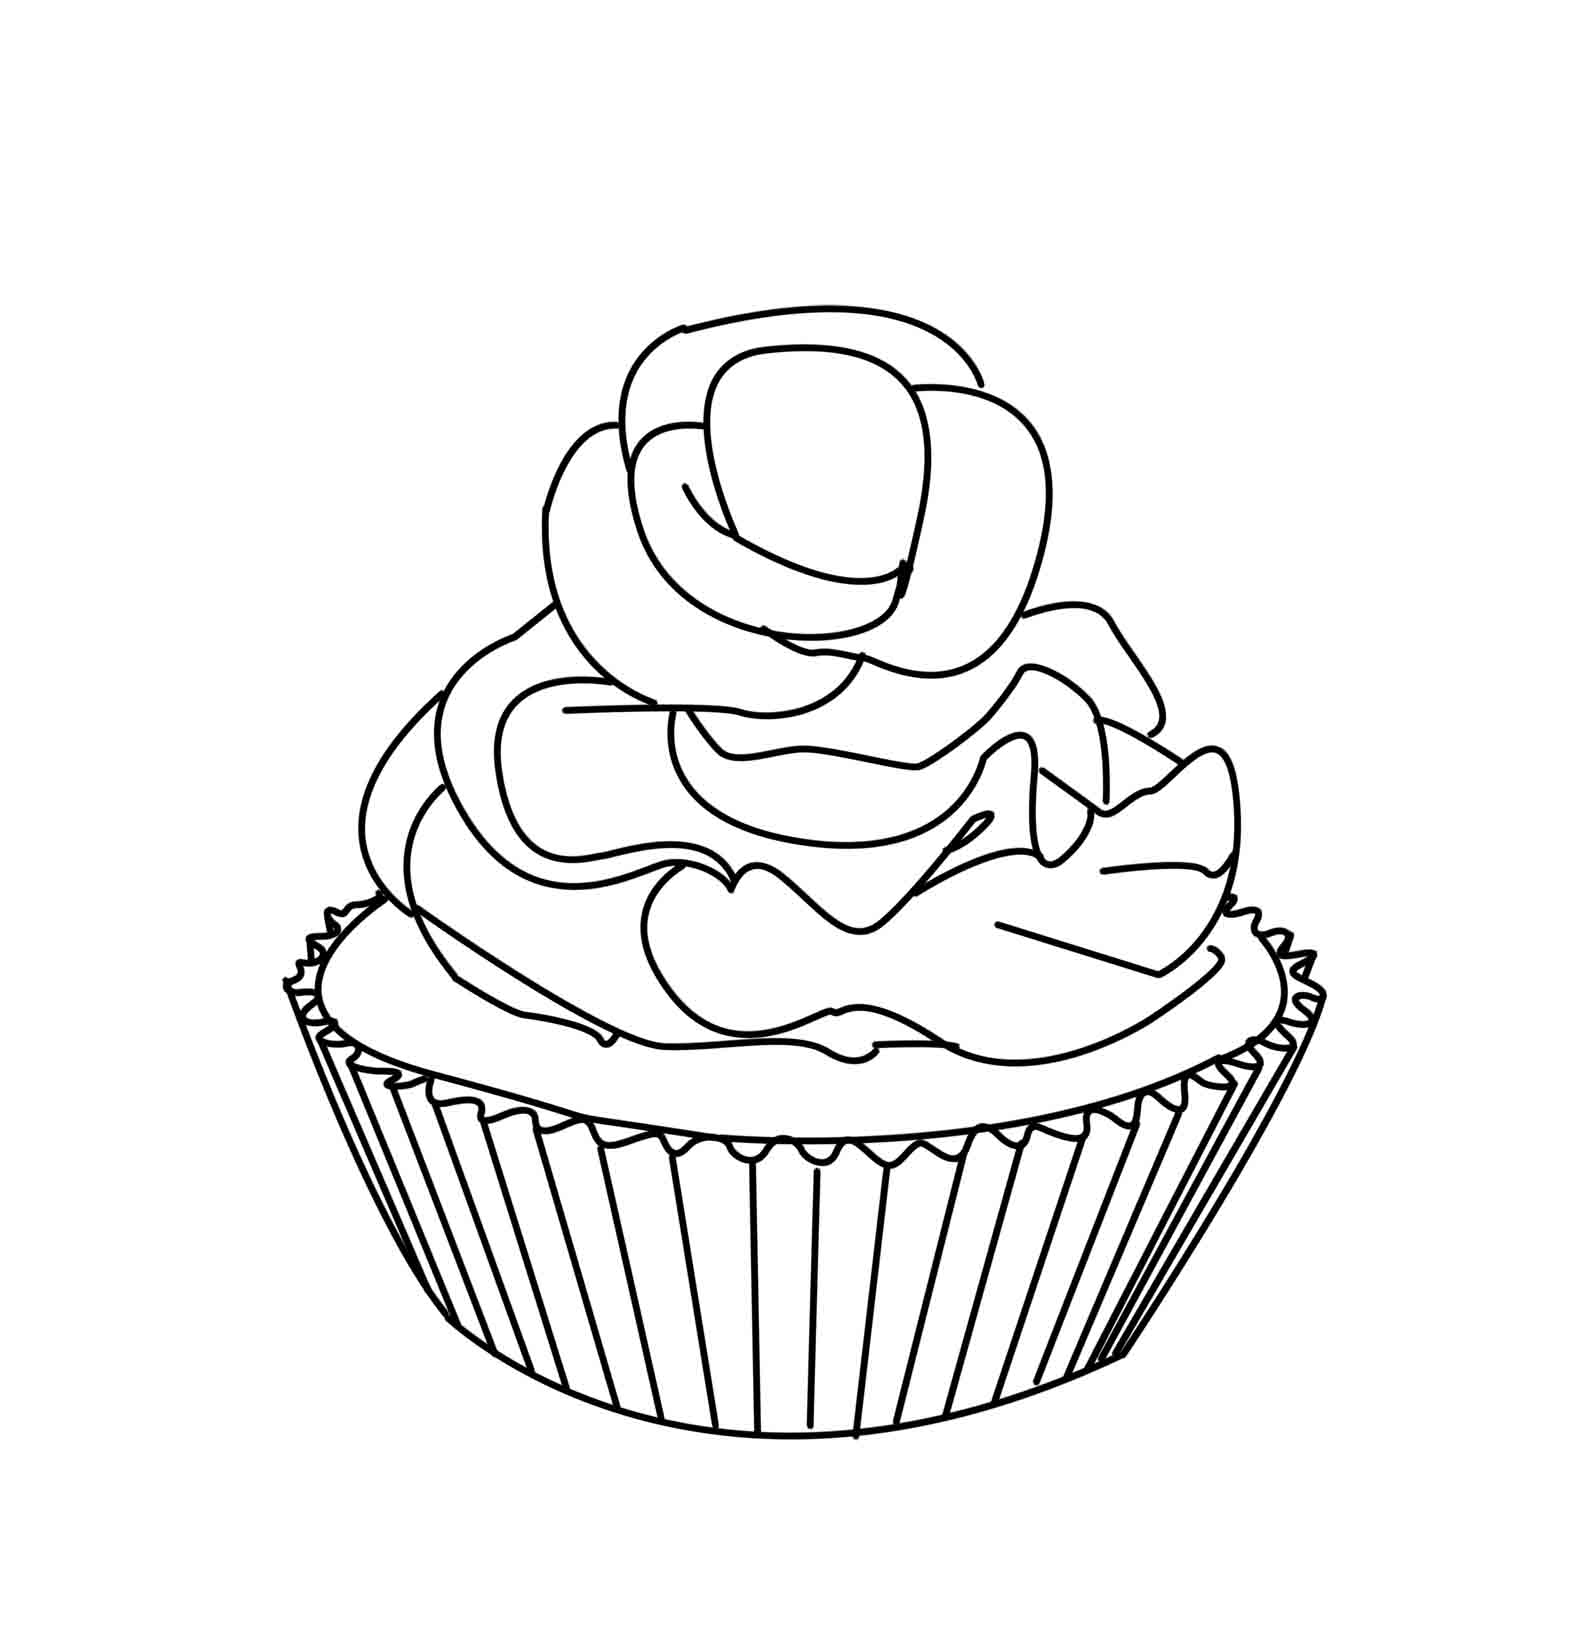 28 Cupcake Coloring Pages Selection | FREE COLORING PAGES - Part 3